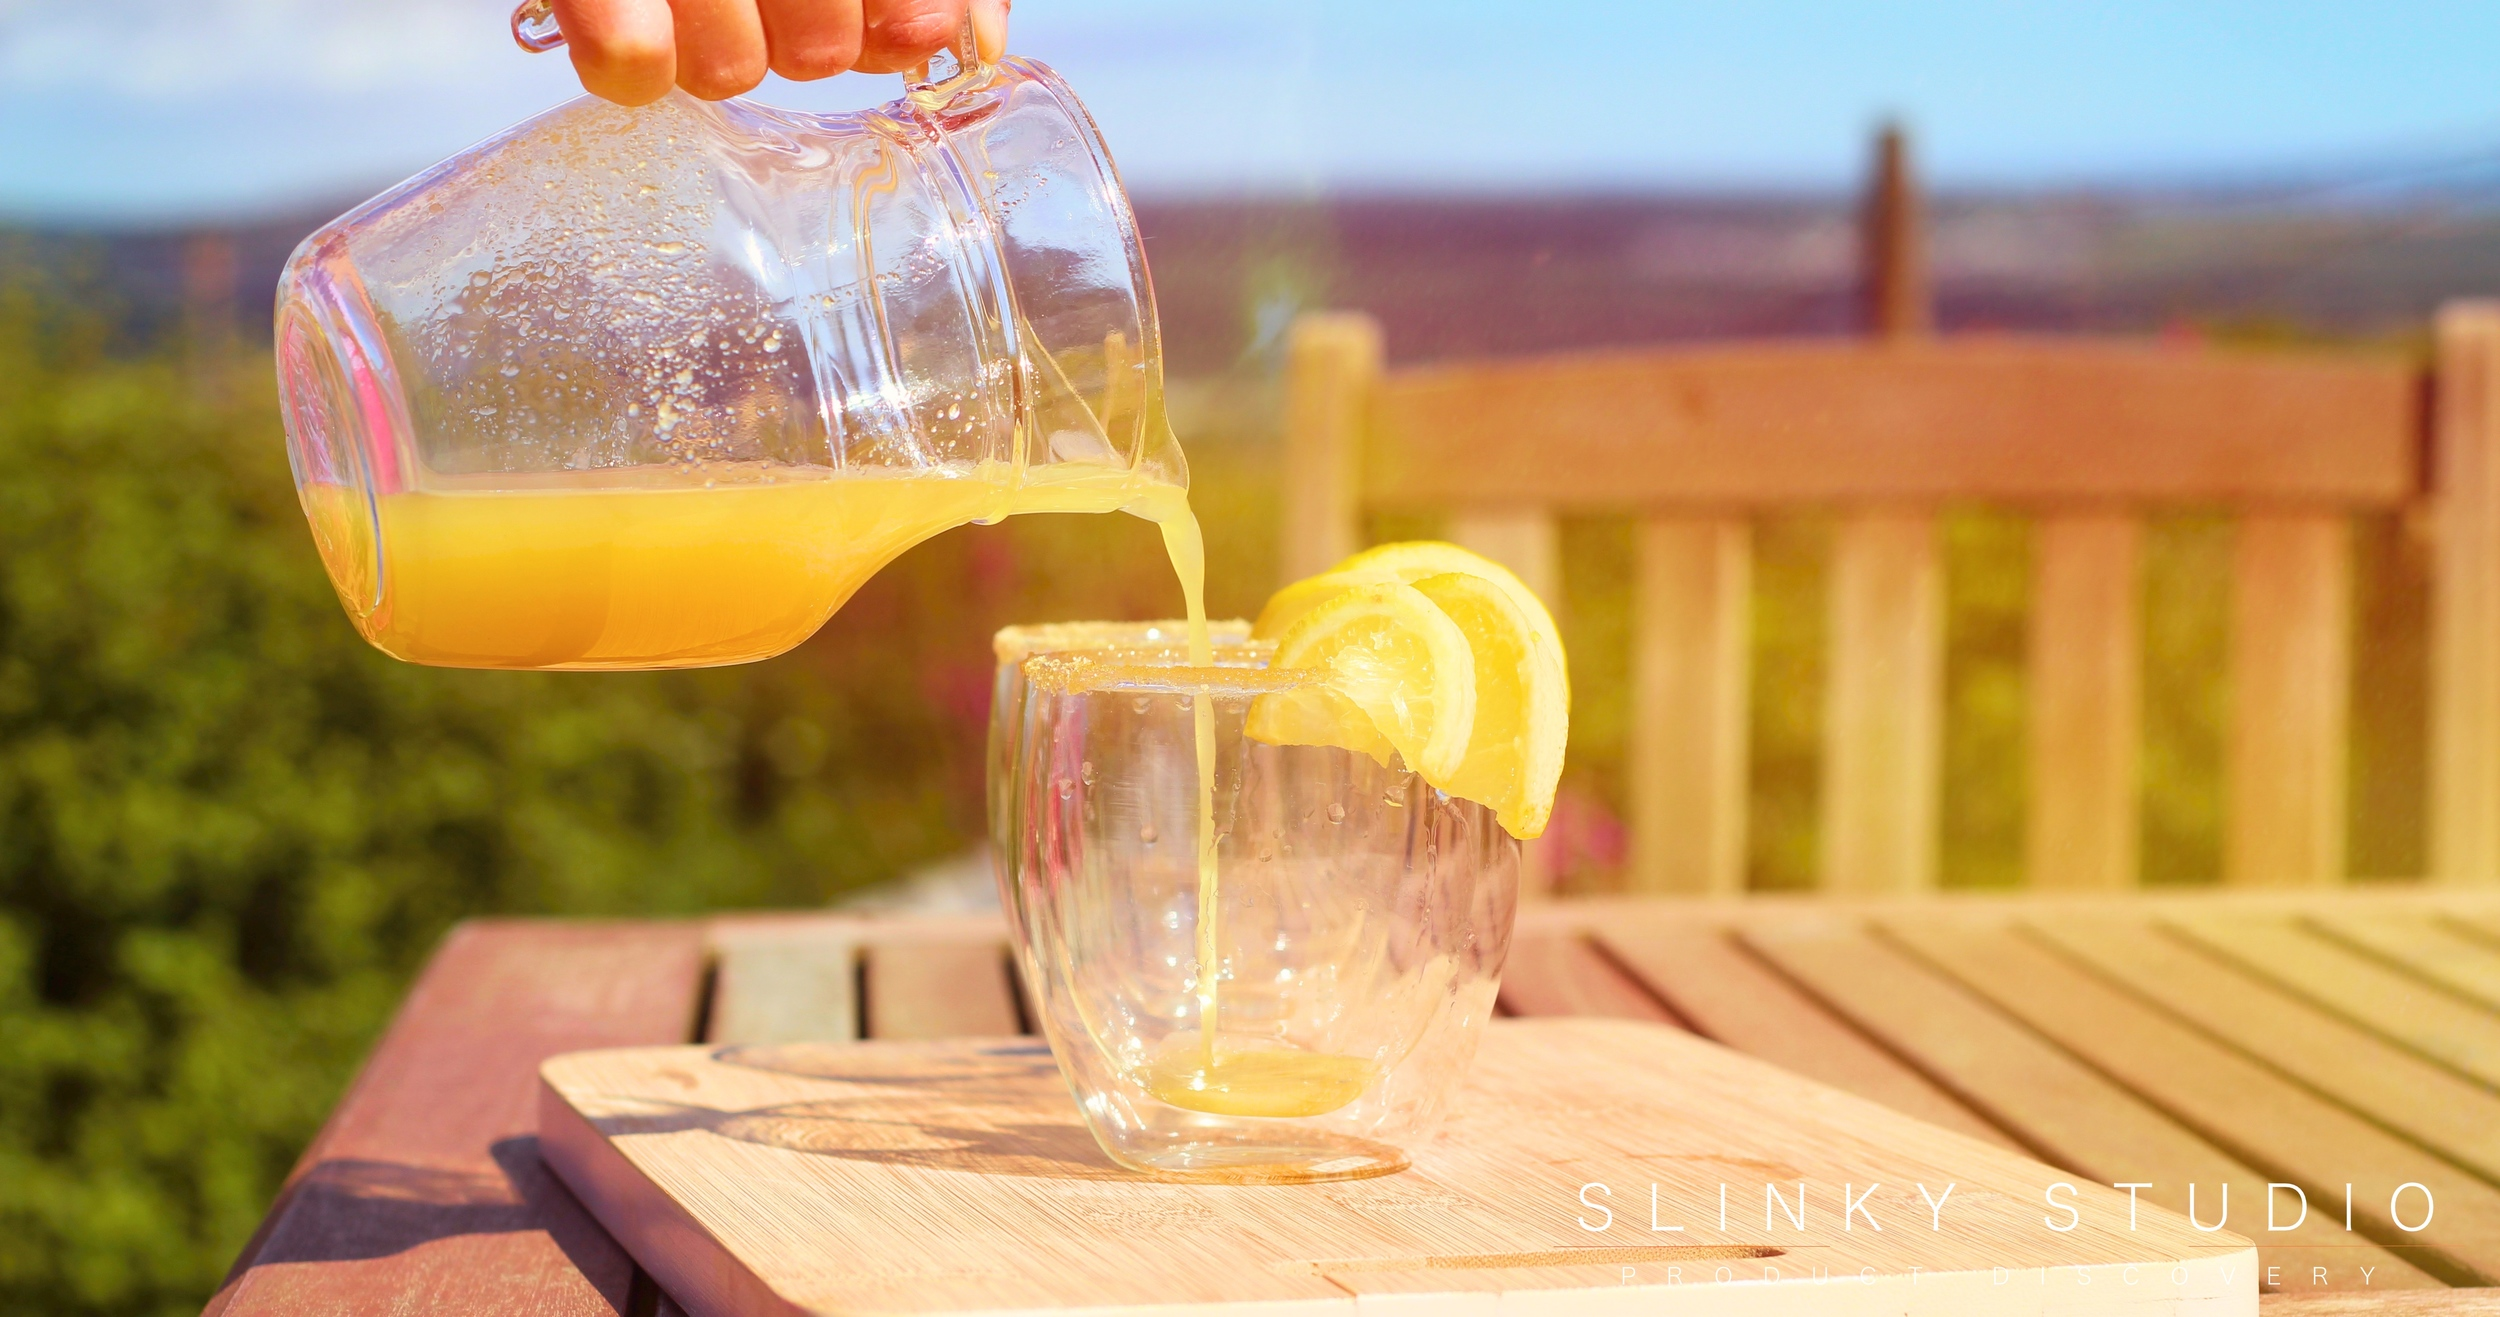 Optimum ThermoCook Ginger Beer Being Poured On Bench in Sun.jpg